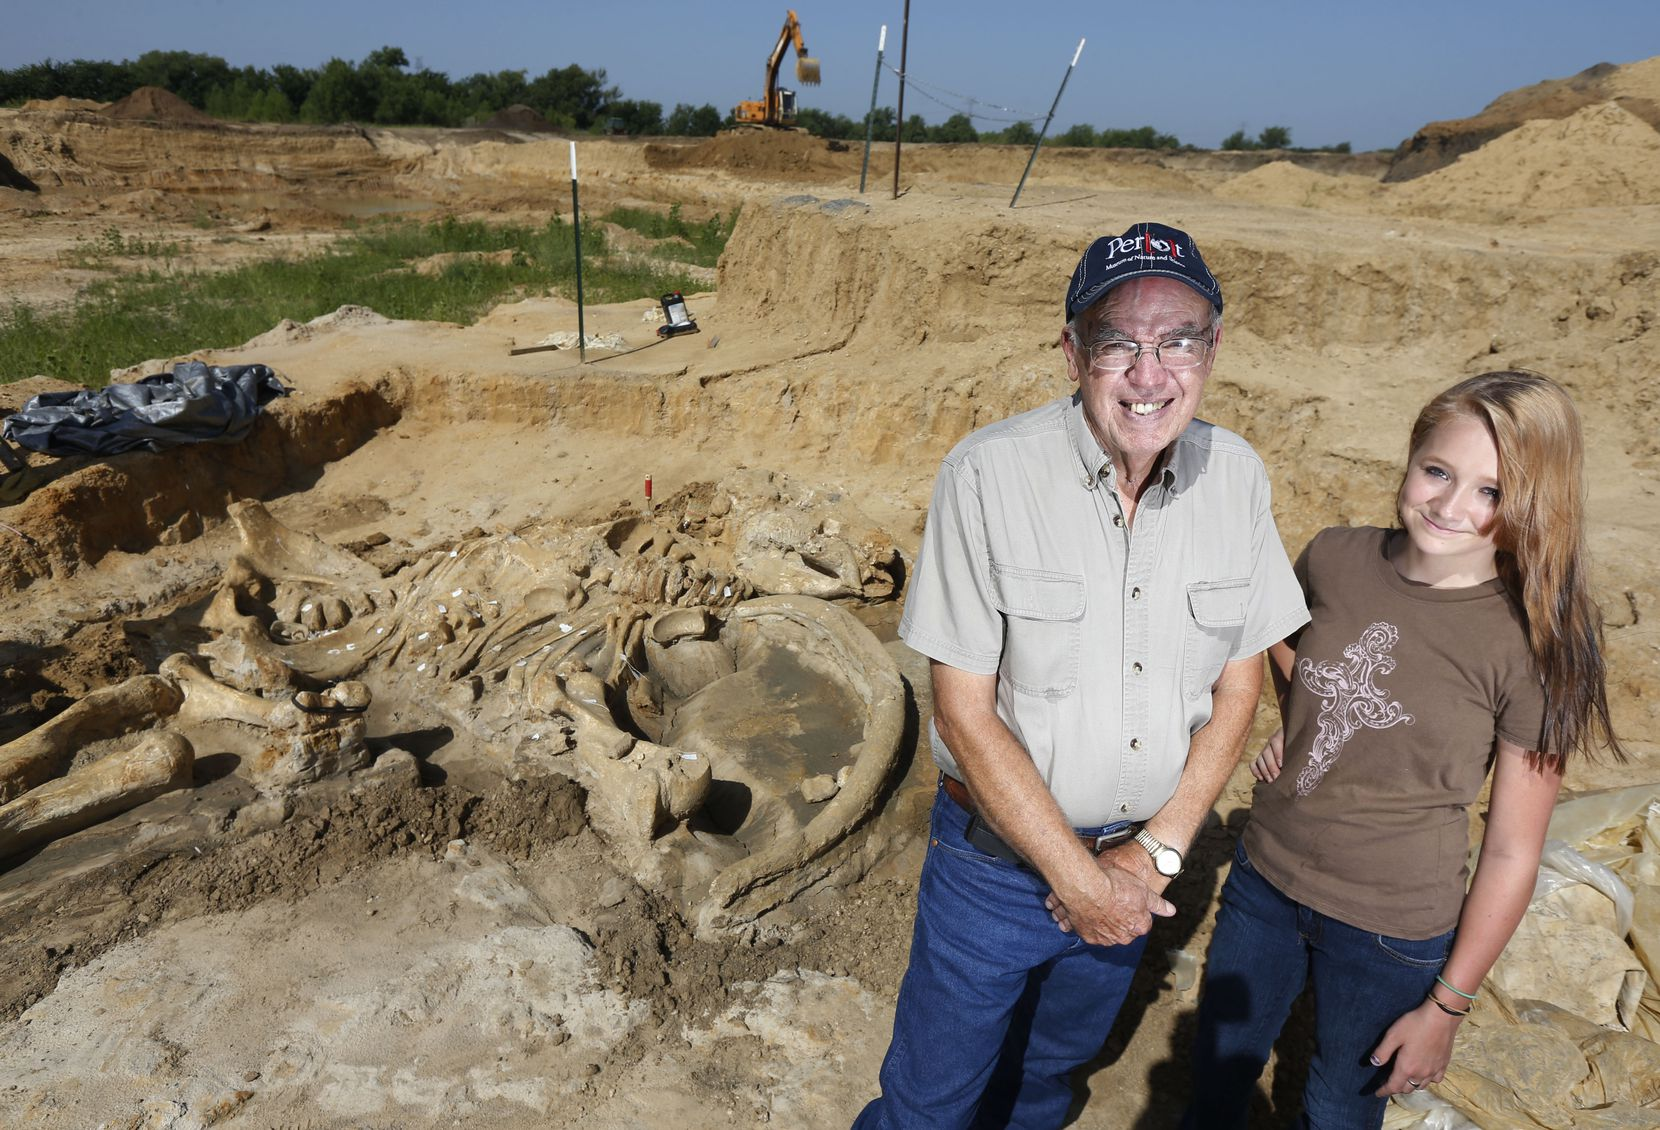 Wayne McEwen poses with granddaugther Halee Beasley, 13, at the site where he uncovered a well-preserved mammoth skeleton in his Ellis County gravel pit. He is donating the skeleton to the Perot Museum of Nature and Science in Dallas.